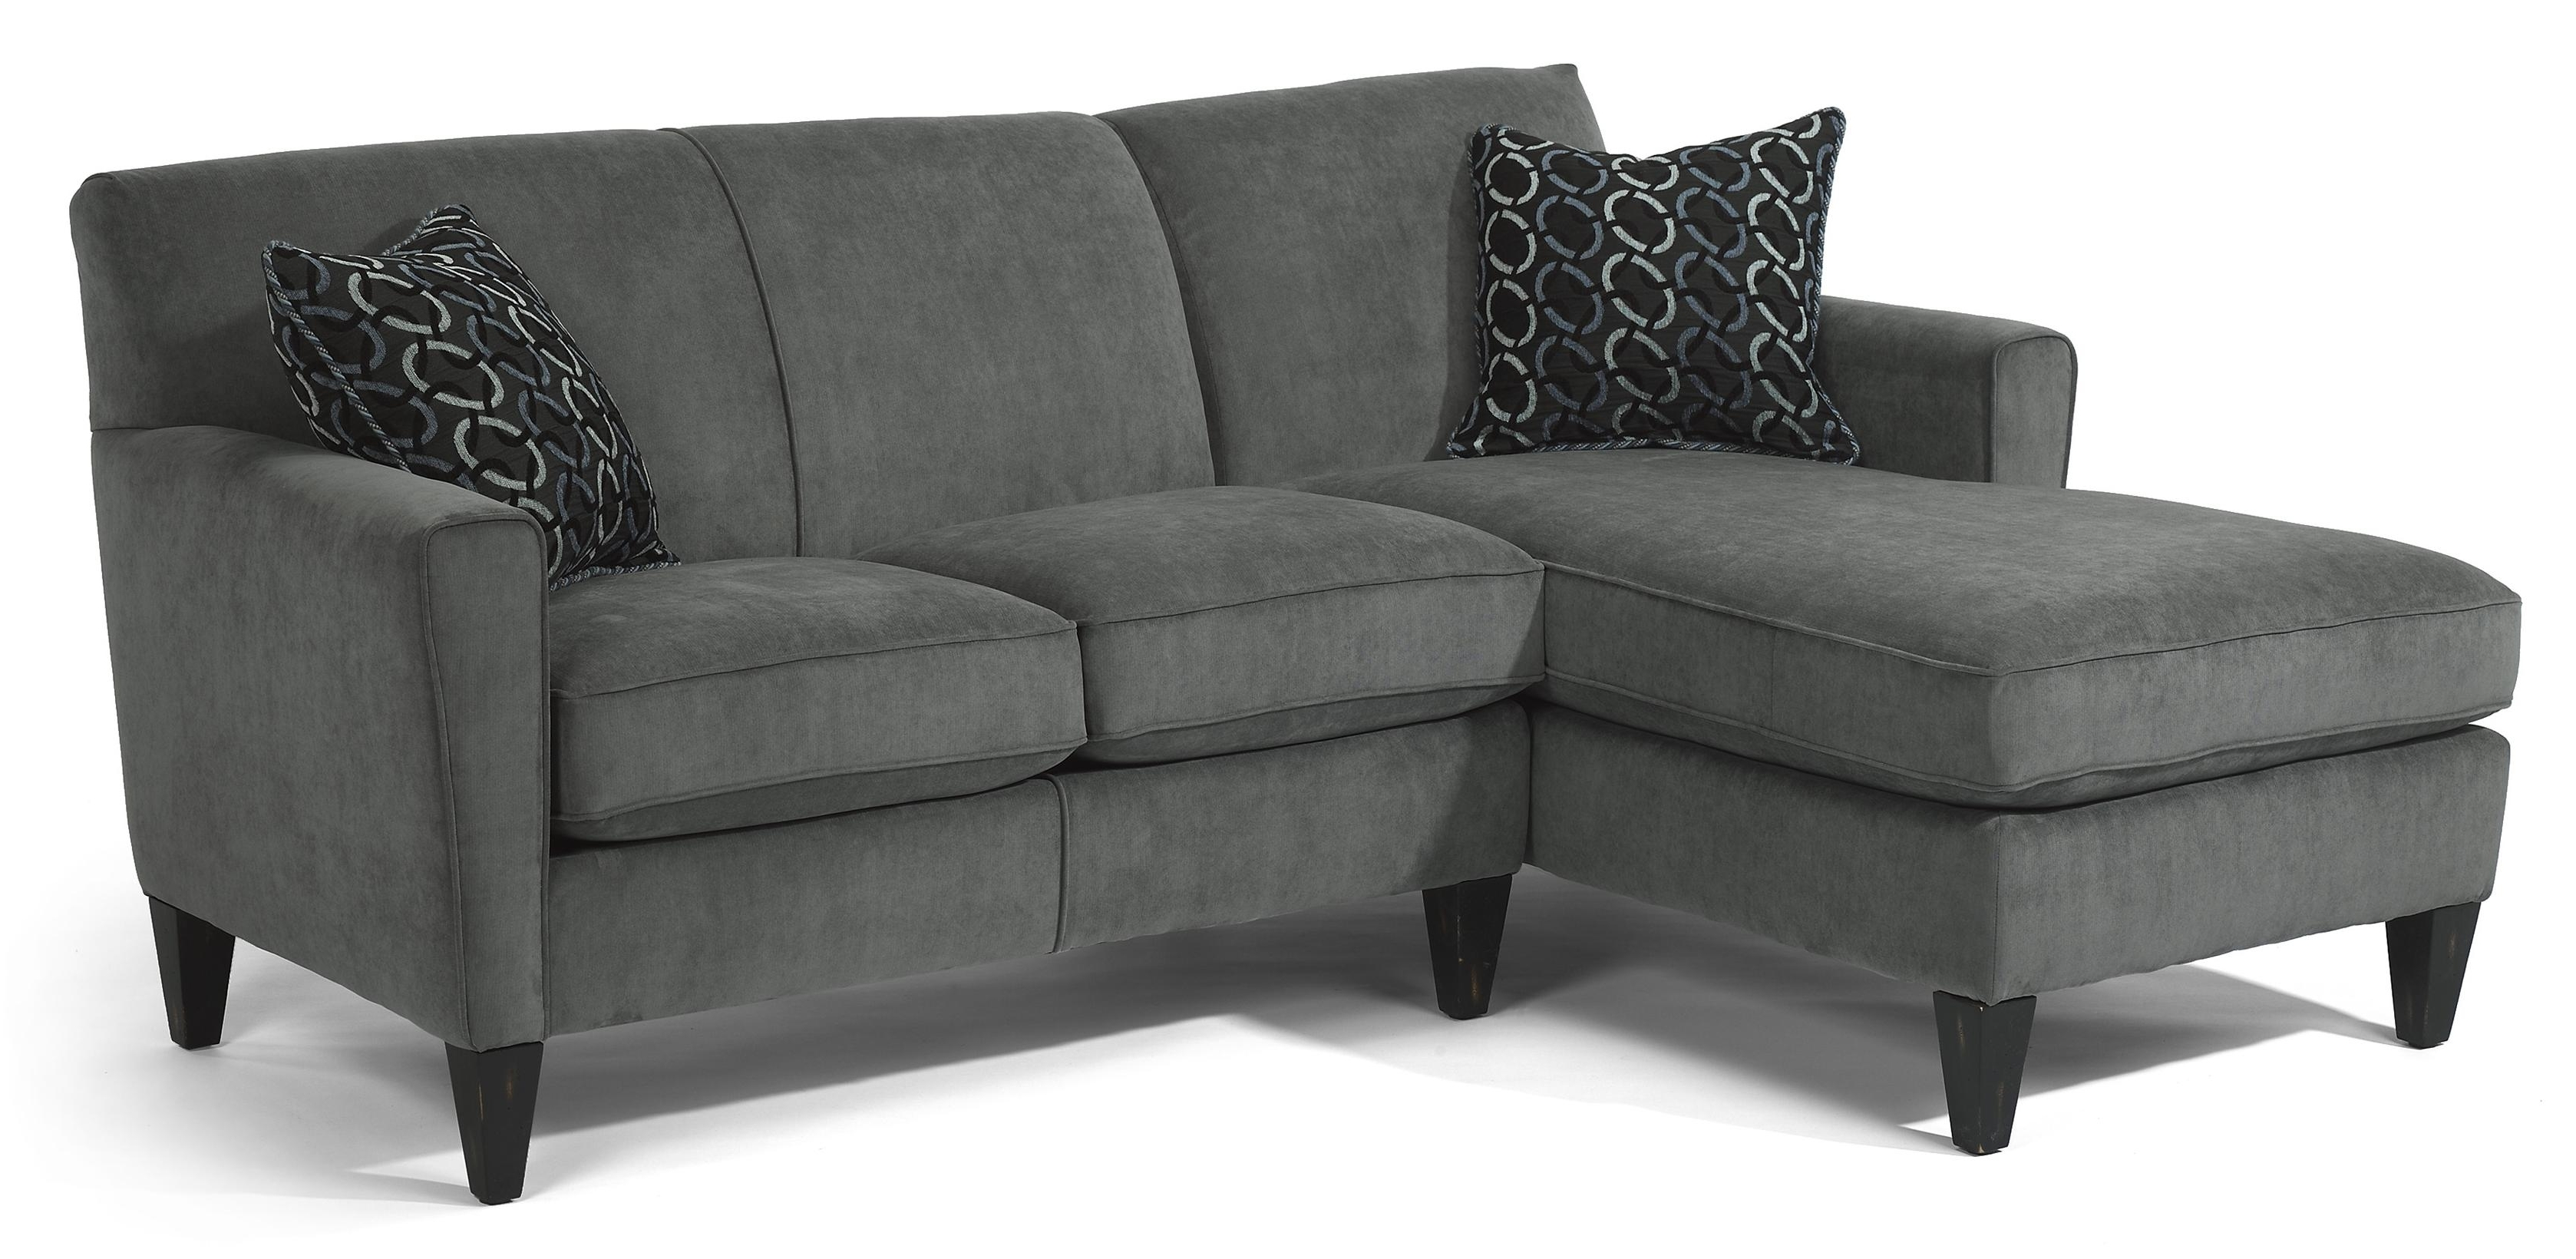 Duluth Mn Sectional Sofas Inside Recent Flexsteel Digby Contemporary L Shape Sectional Sofa – Ahfa – Sofa (View 4 of 15)